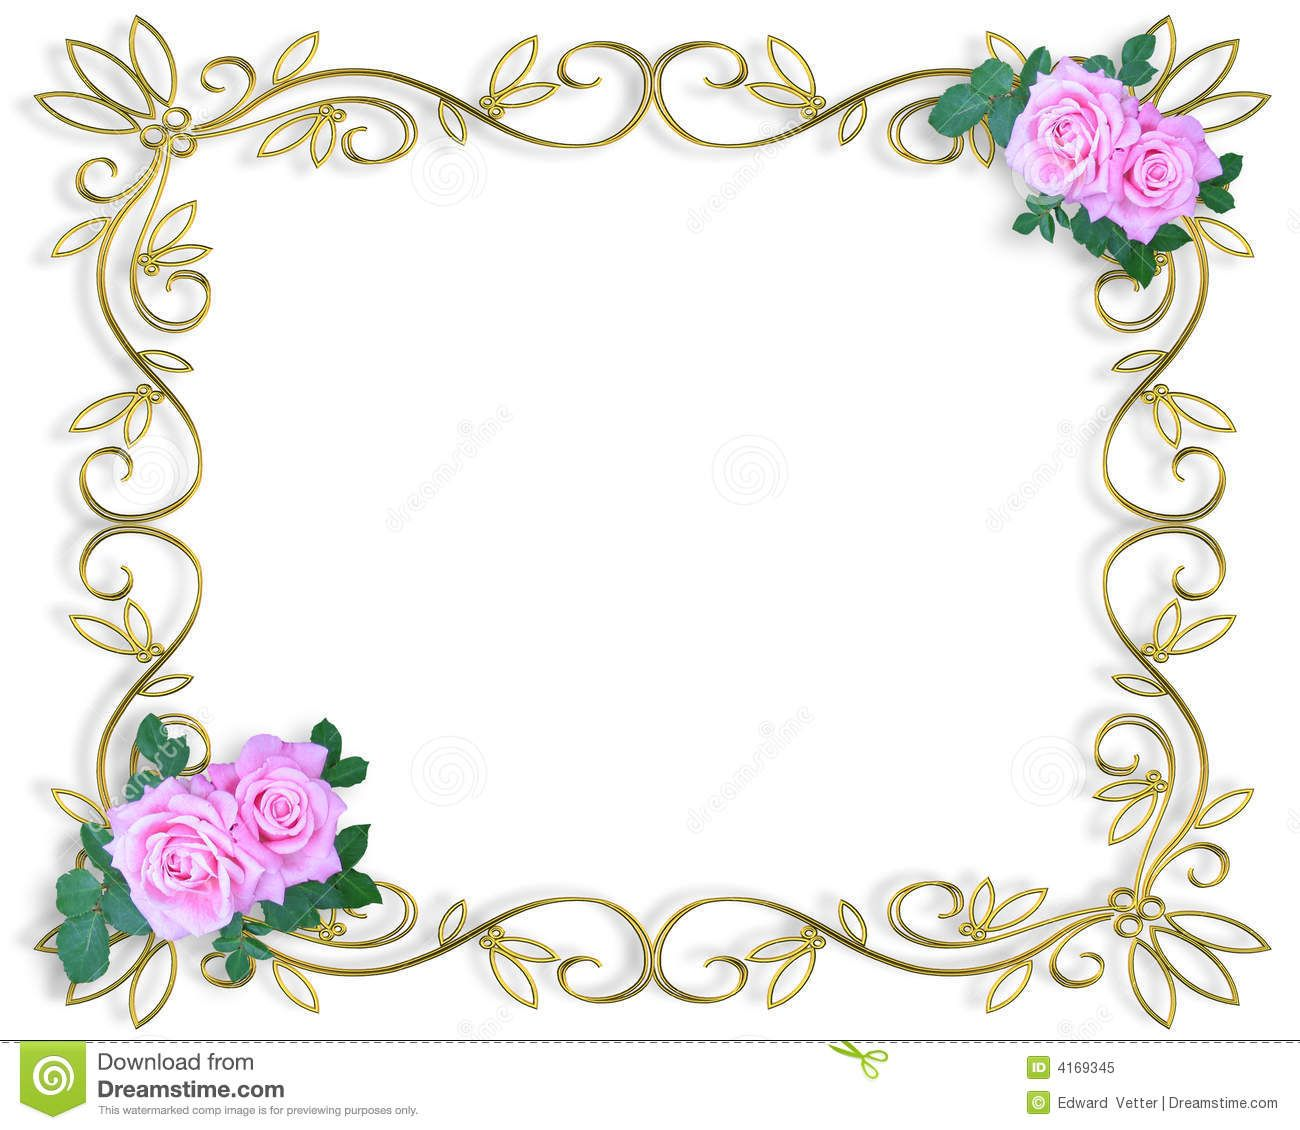 10582 rose cutwork lace embroidery  google search